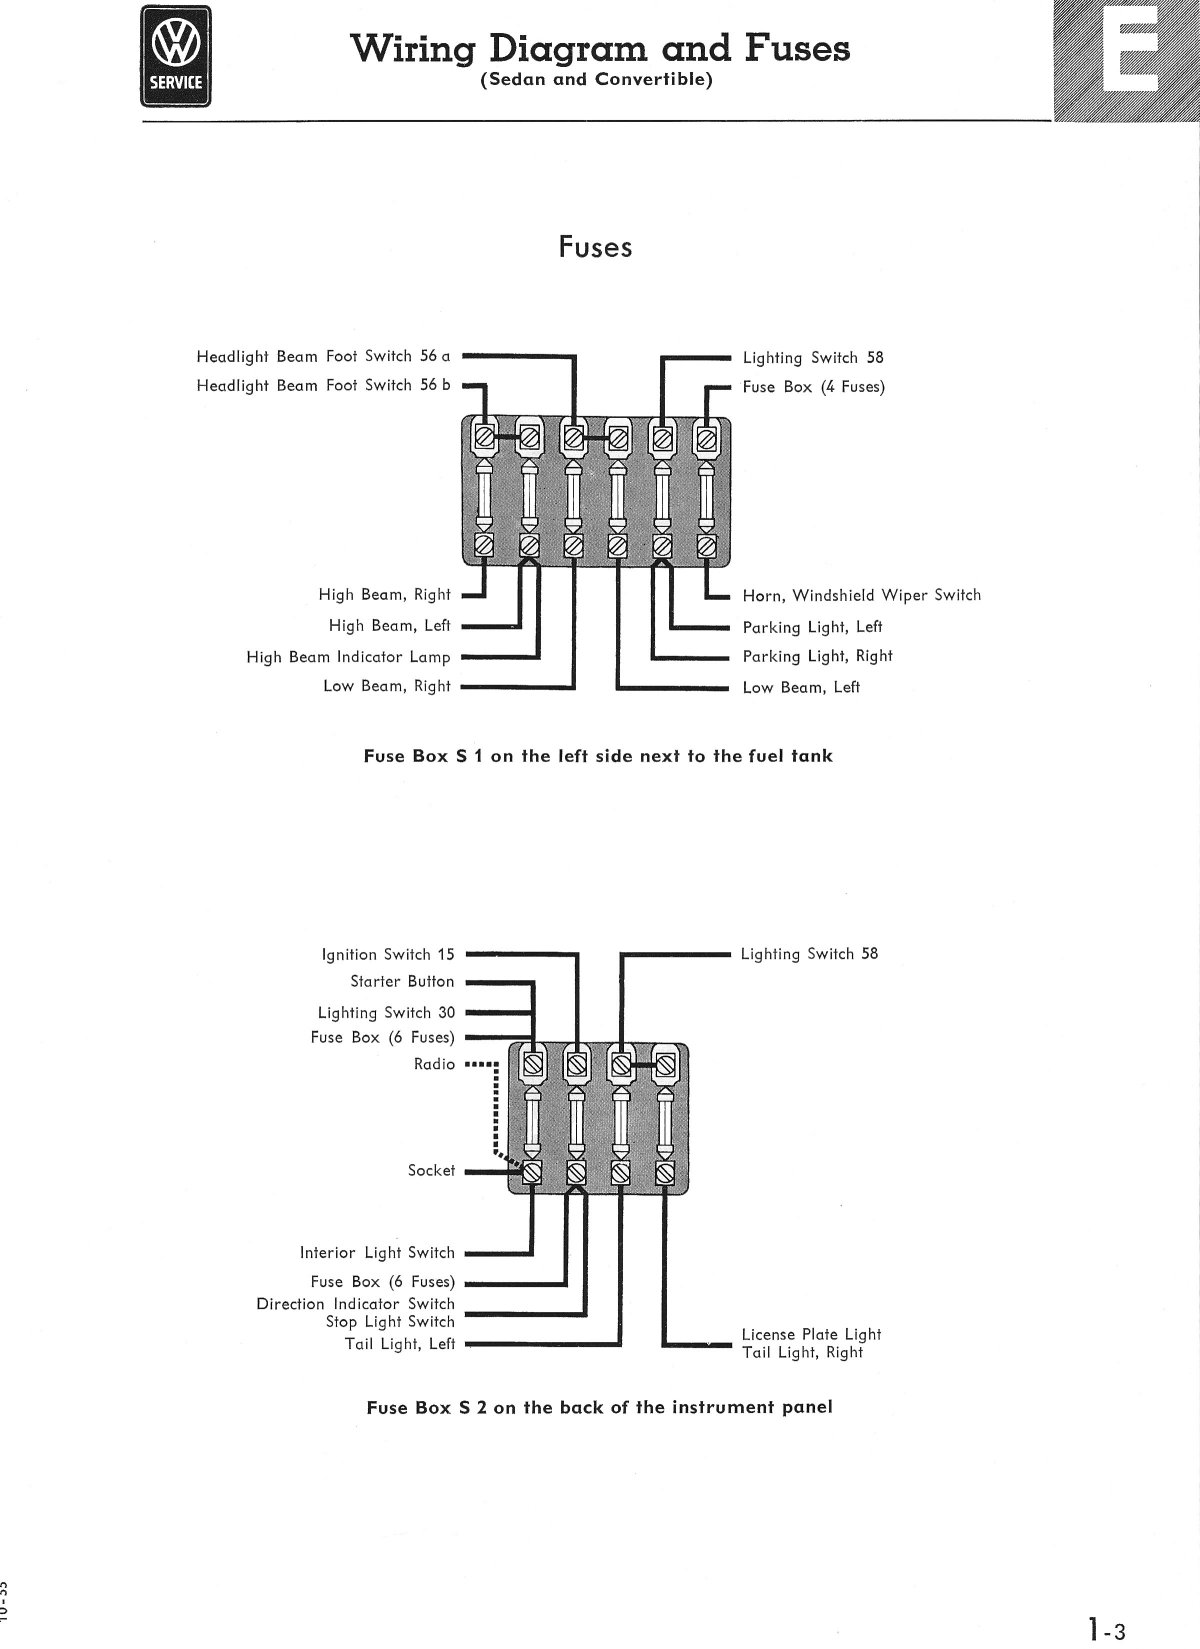 old fuse box wiring diagram   27 wiring diagram images